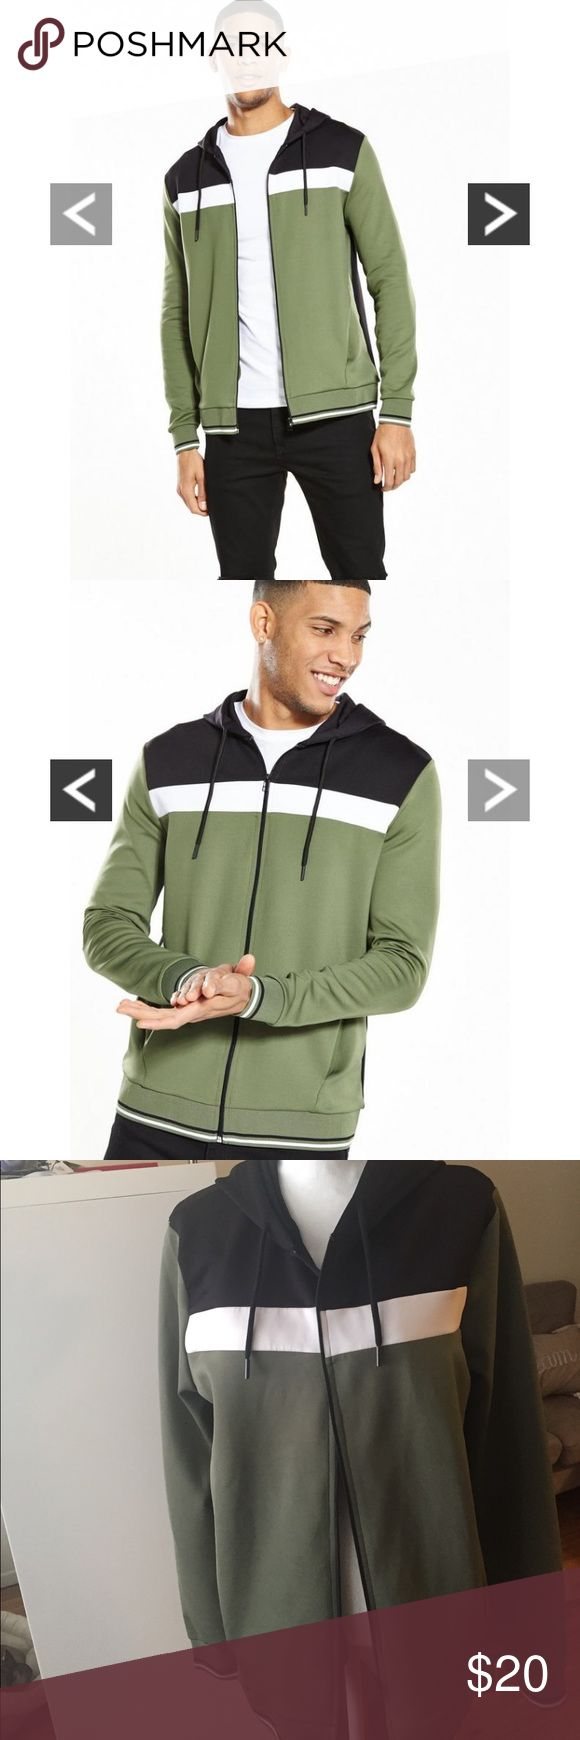 River Island Men's Hoodie (M) This is a NWOT size medium River Island men's zippered hoodie. Has a nice sporty look! Purchased for a show but never ended up using it. River Island Sweaters Zip Up